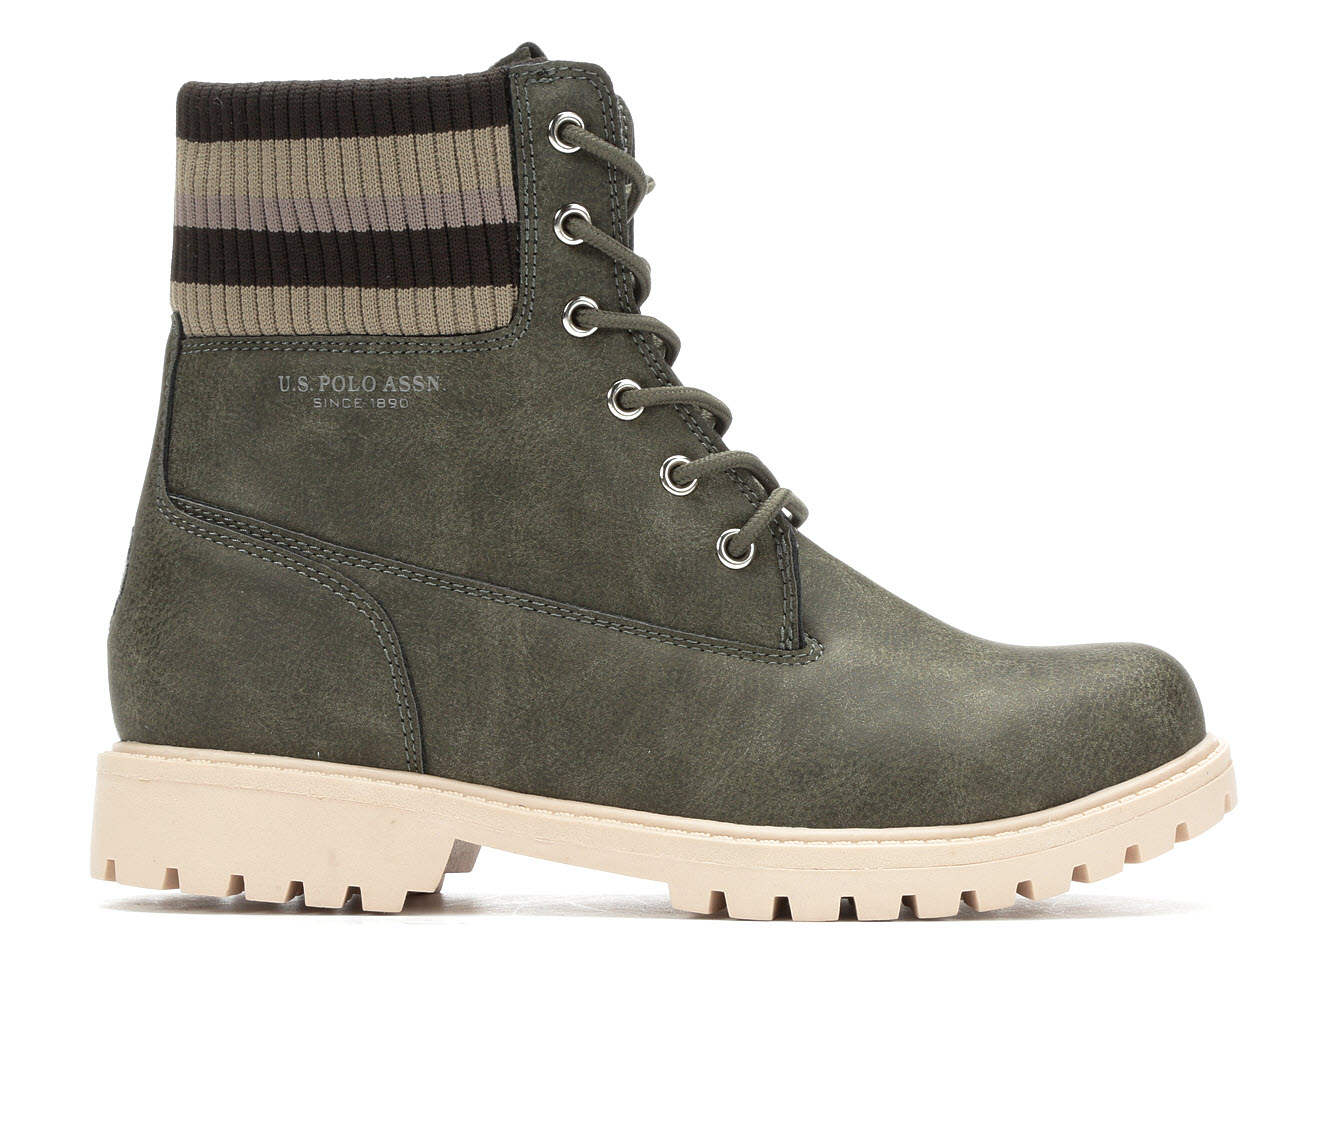 US Polo Assn Holland Women's Boot (Green Faux Leather)